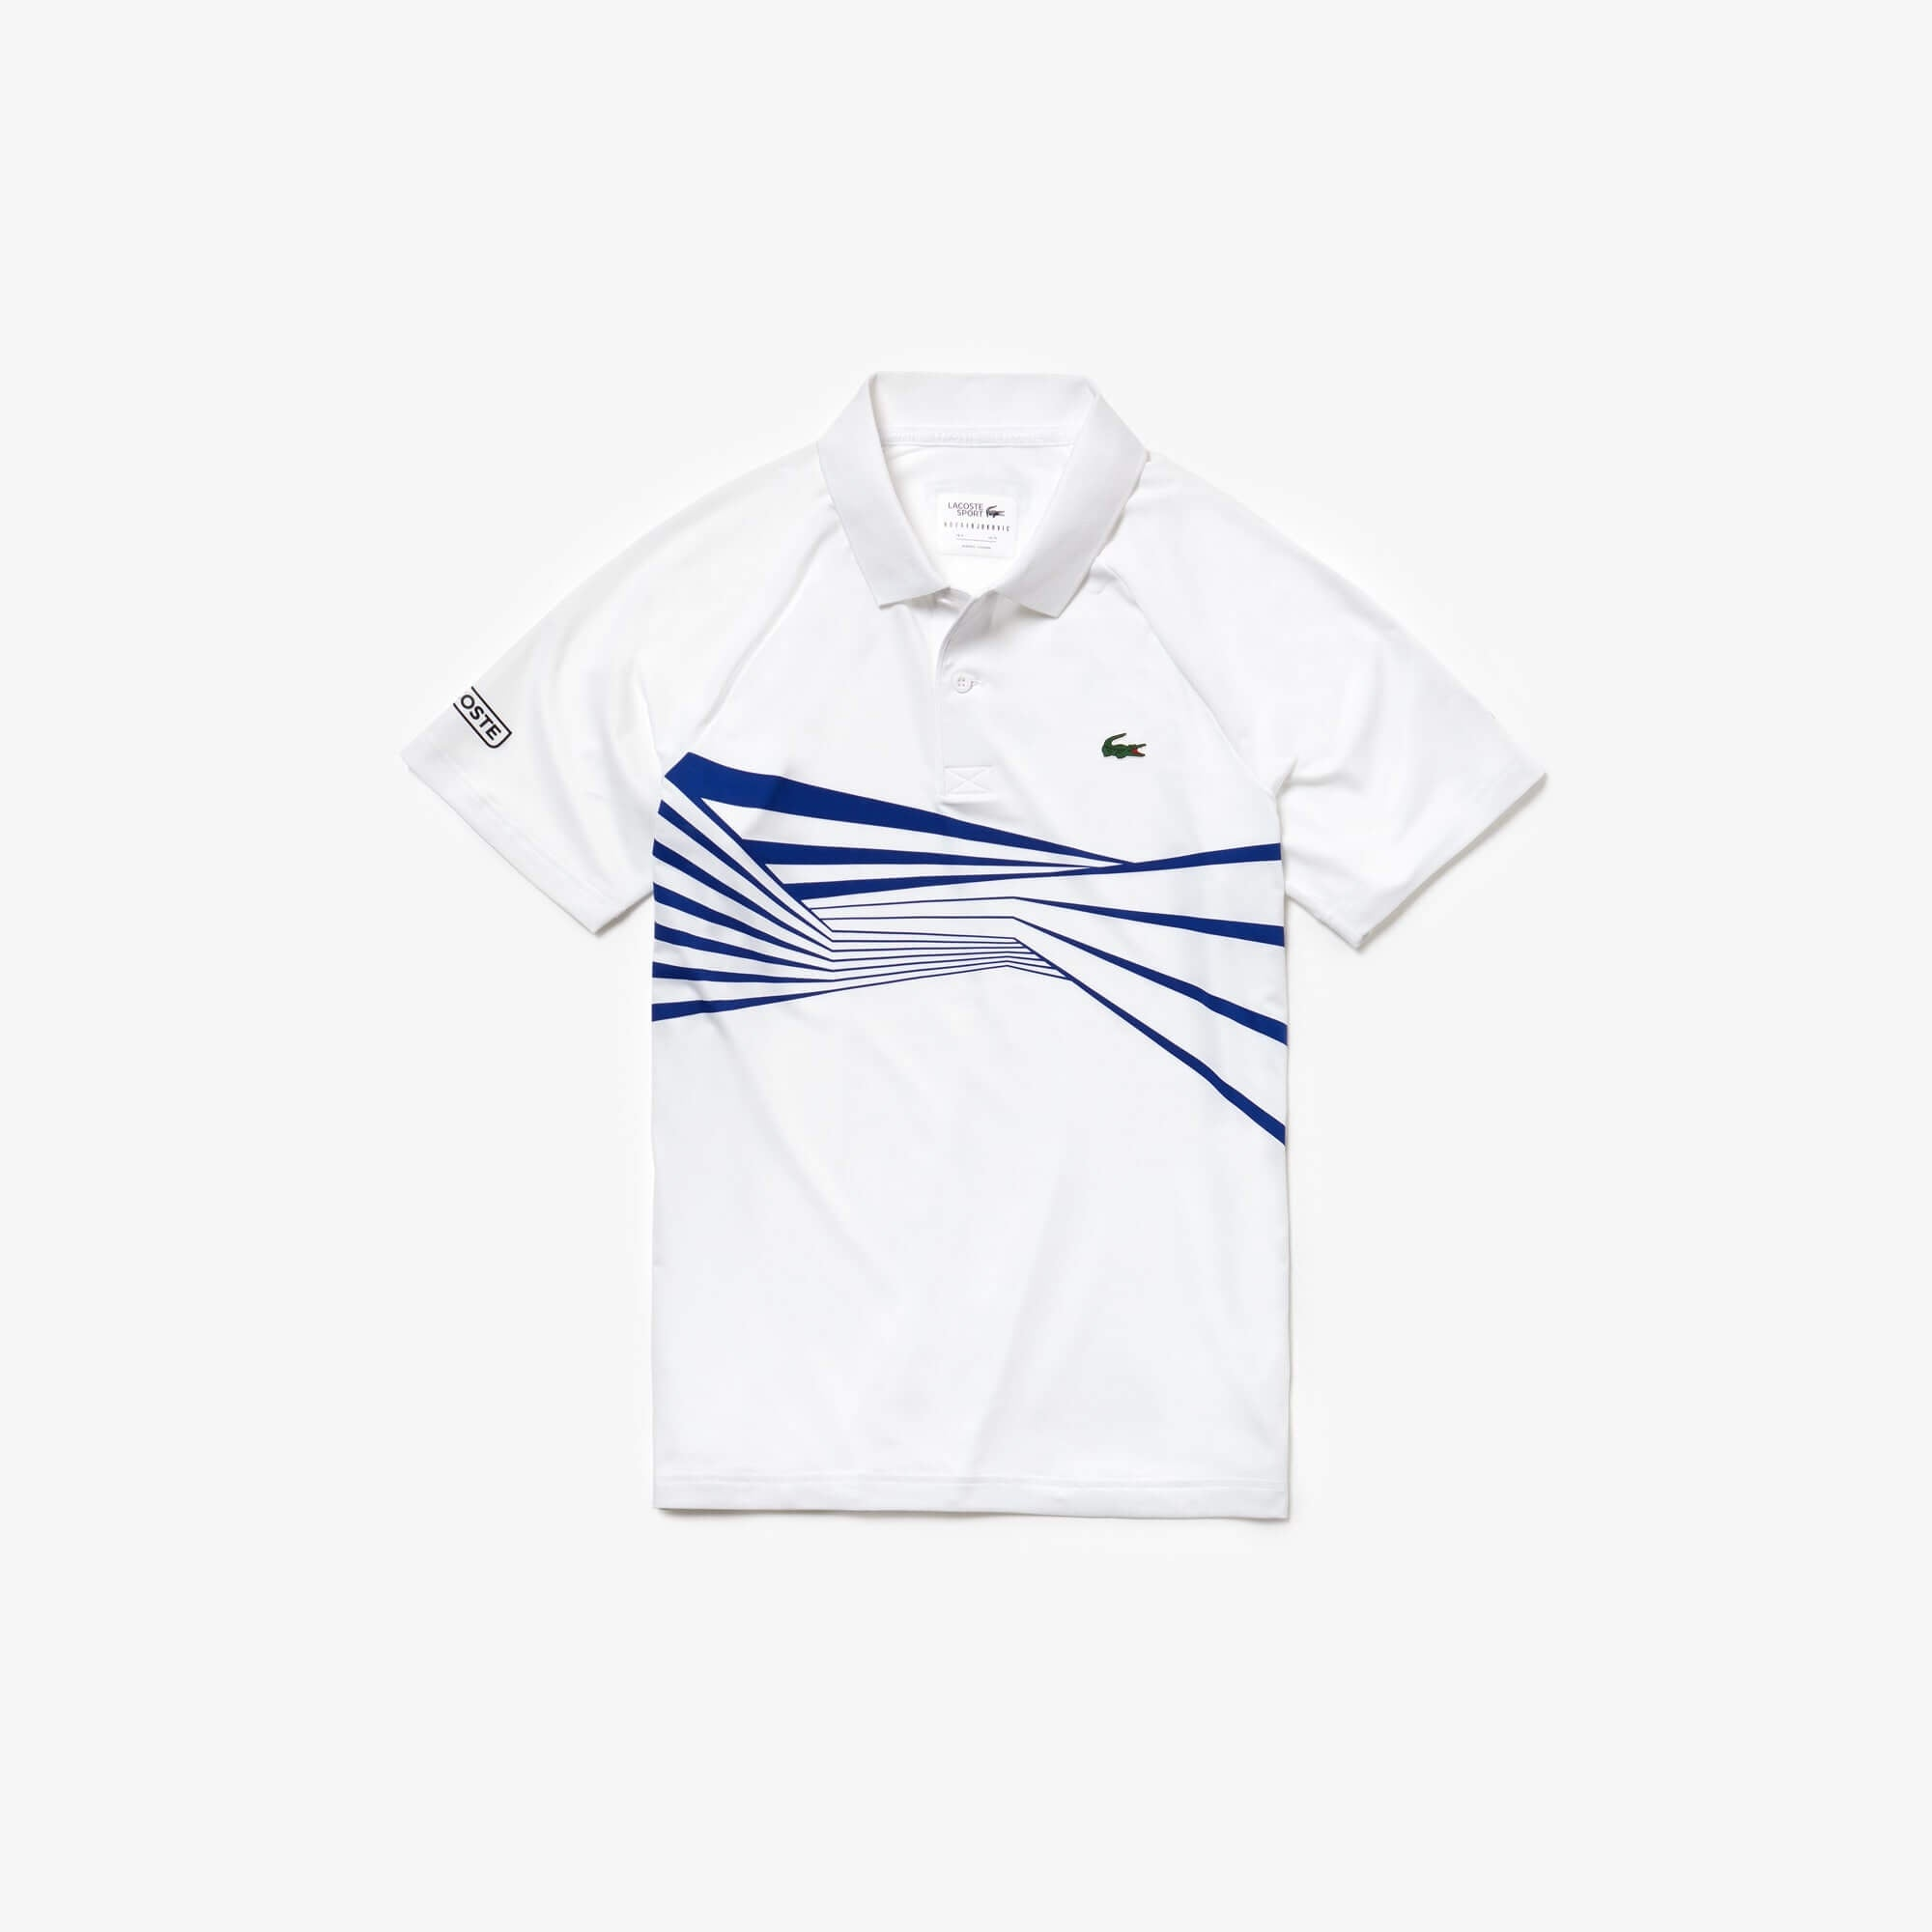 Lacoste Men's SPORT Novak Djokovic Collection Tech Jersey Polo White/Blue